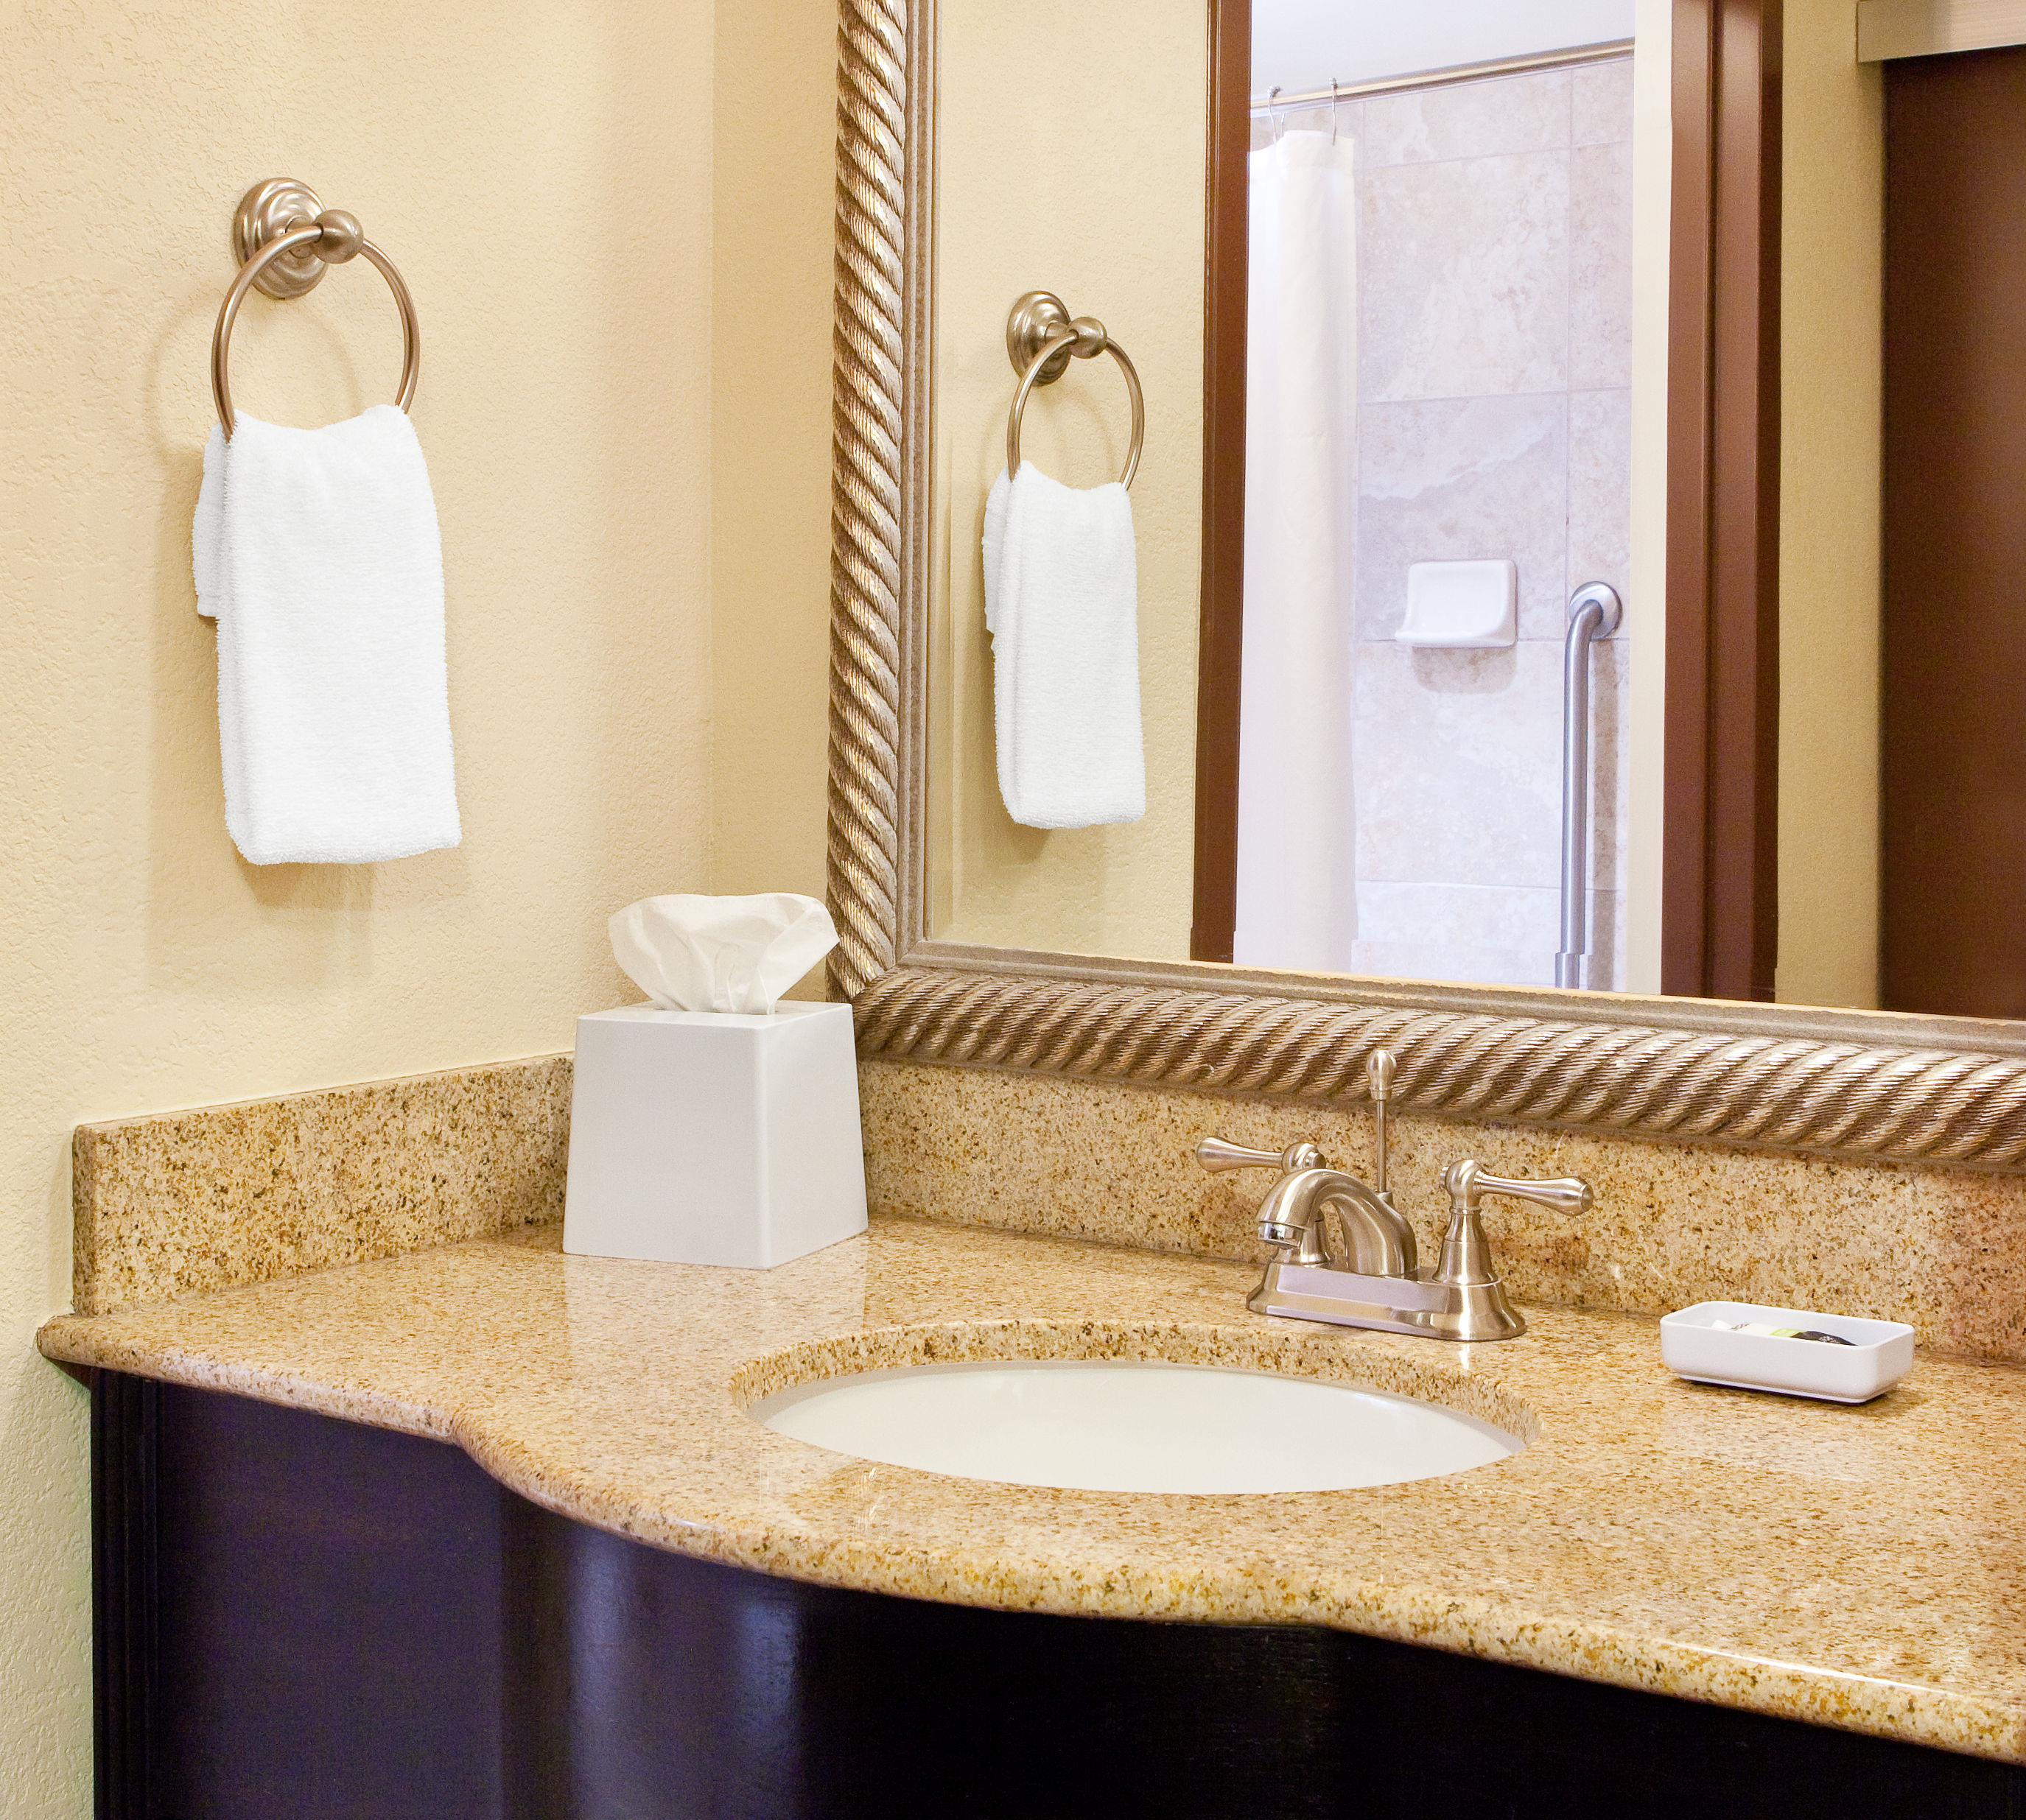 Four Points by Sheraton Knoxville Cumberland House Hotel image 11